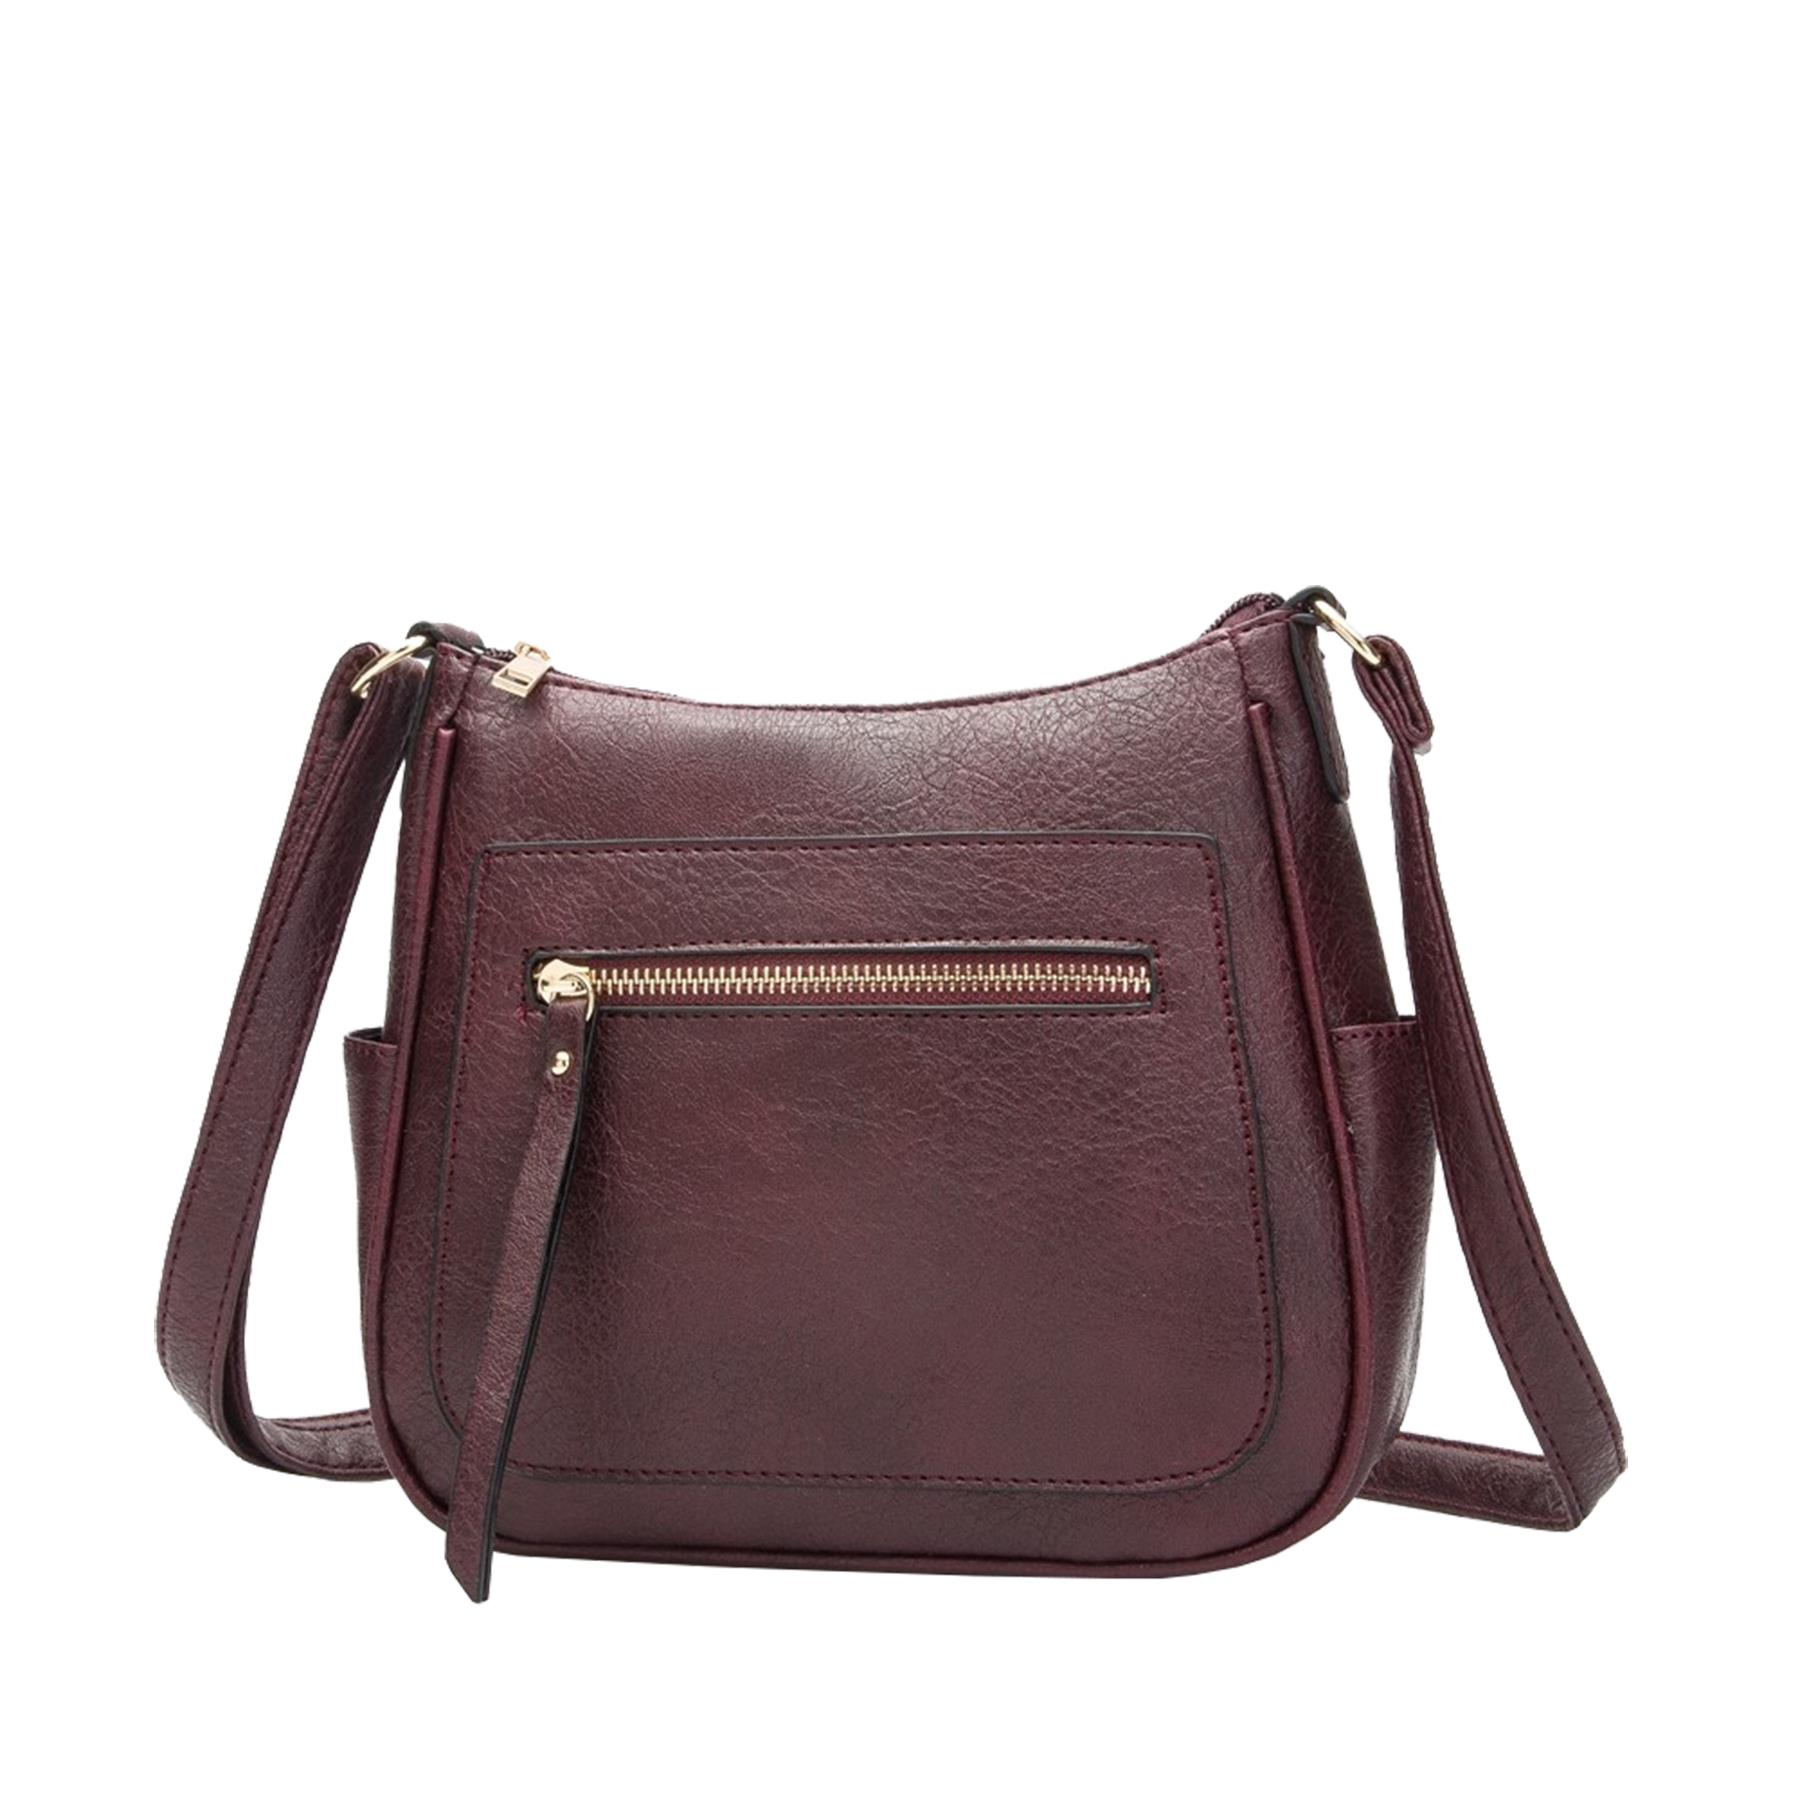 New-Women-s-Front-Zip-Faux-Leather-Basic-Small-Crossbody-Messenger-Bag thumbnail 9